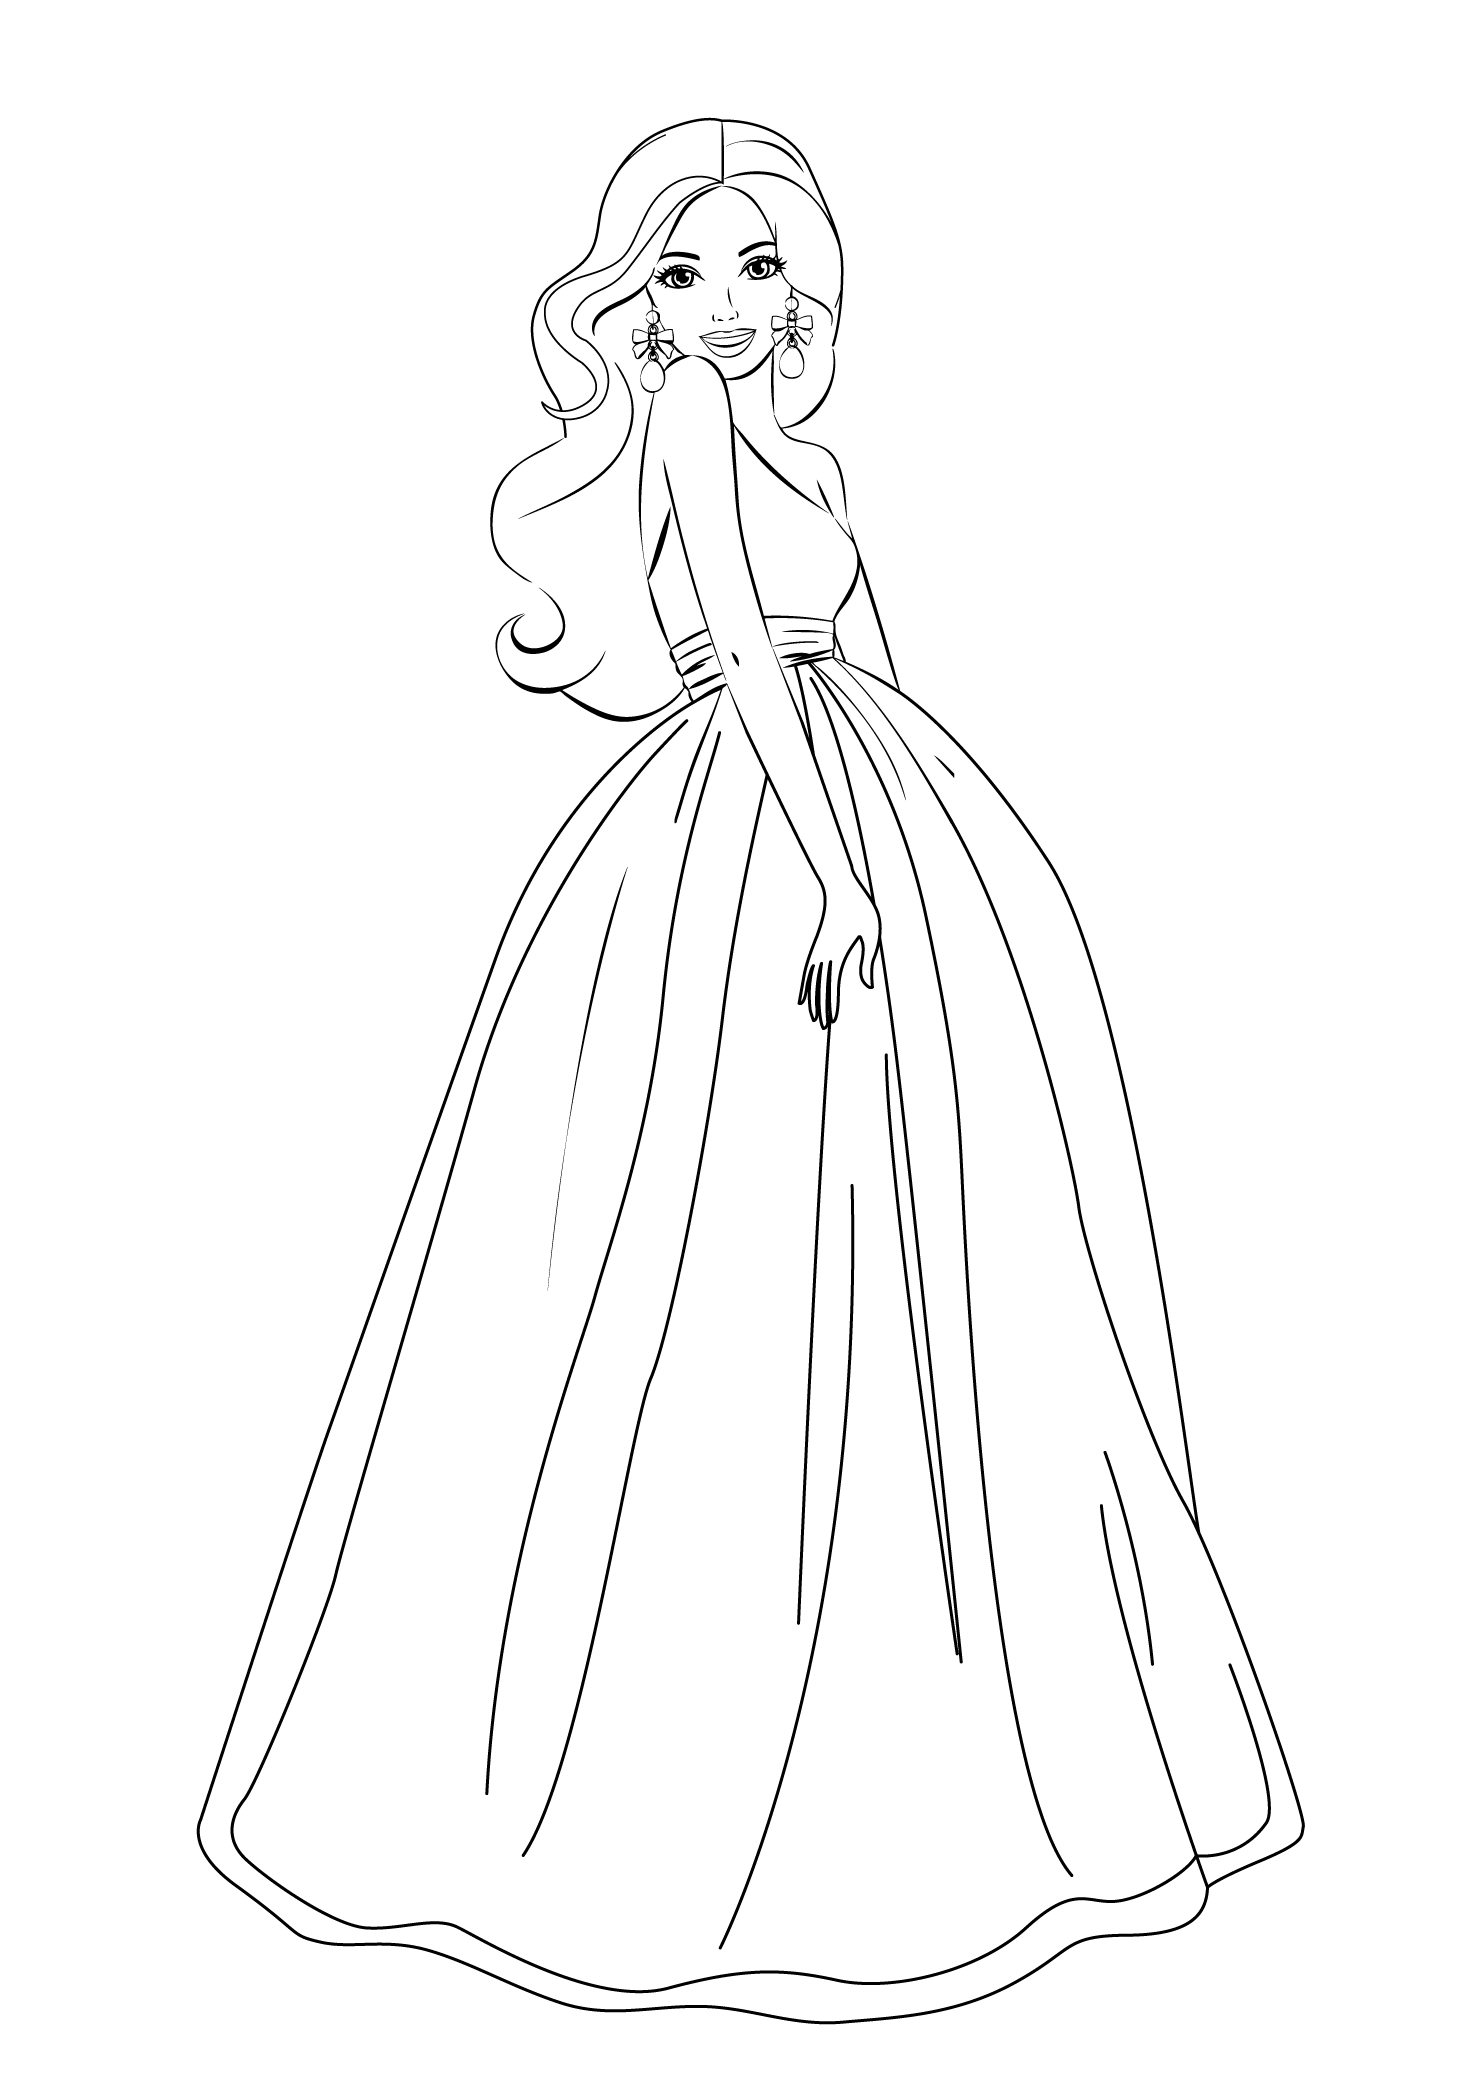 Barbie coloring pages for girls free printable | Моминско ...